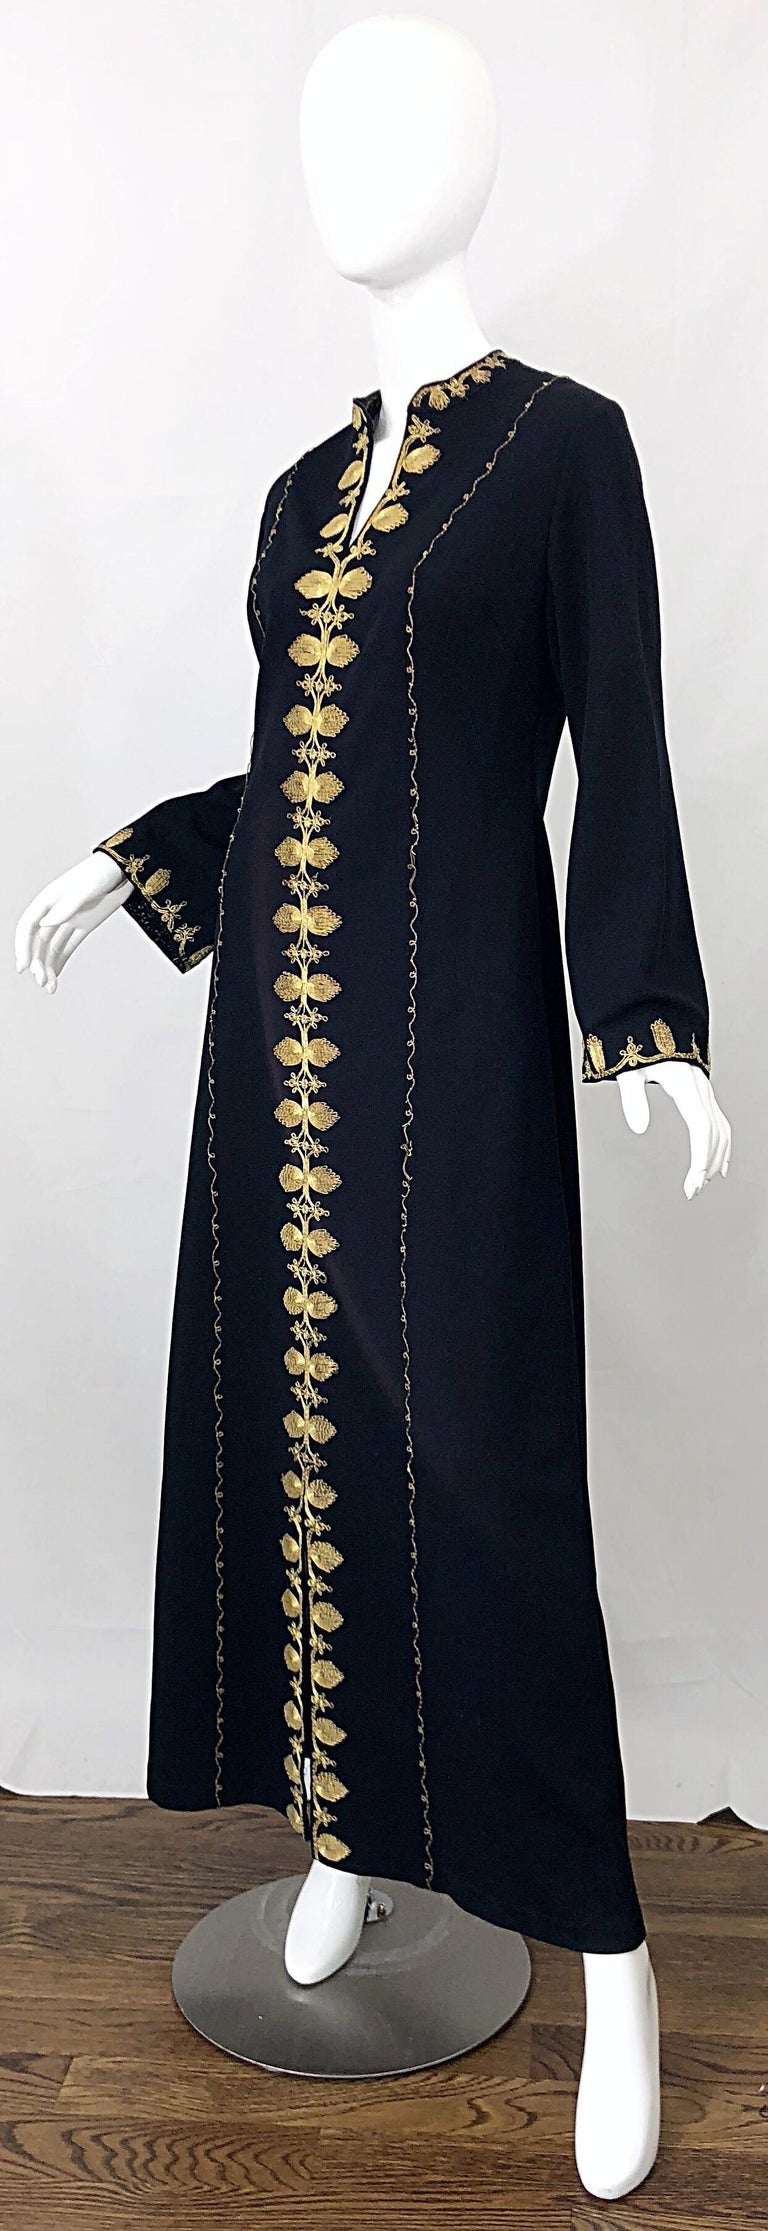 1970s Moroccan Black + Gold Metal Embroidered Vintage 70s Caftan Maxi Dress For Sale 3